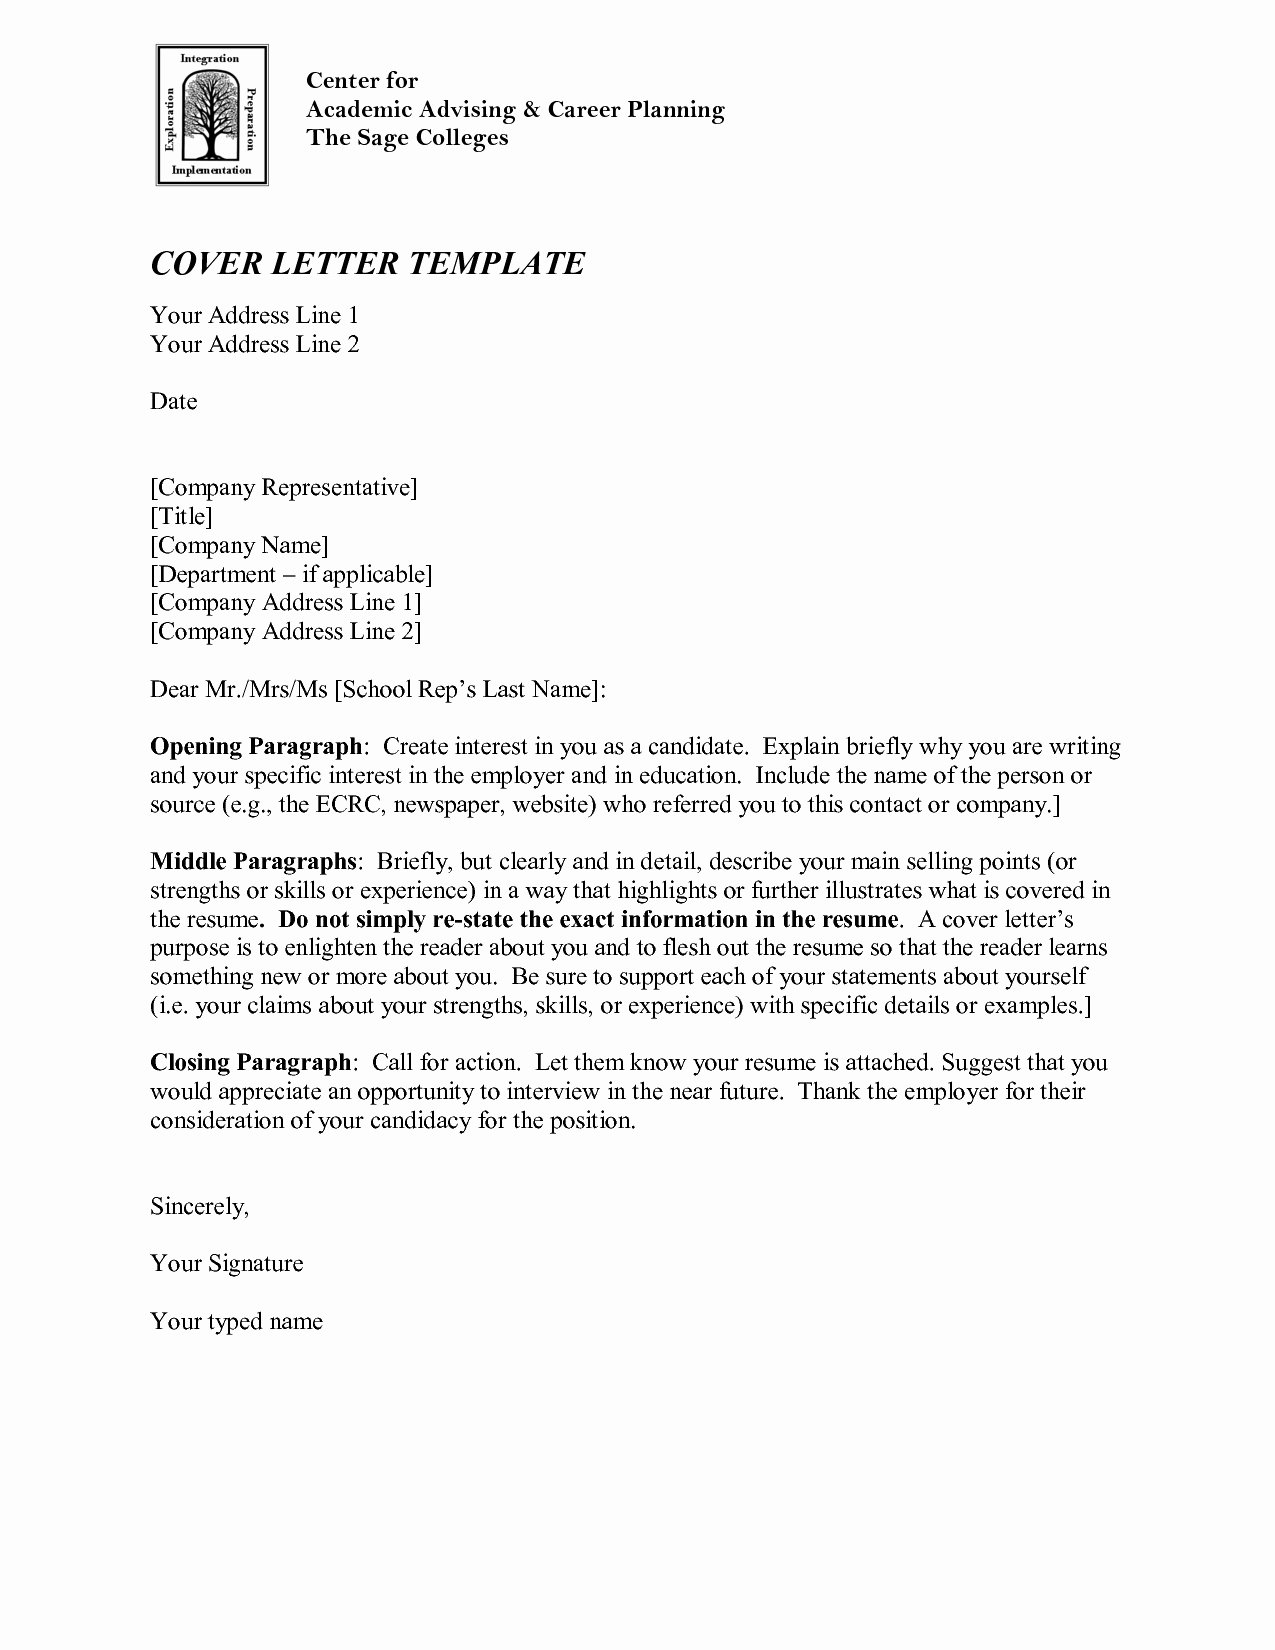 Closing Paragraph Academic Cover Letter